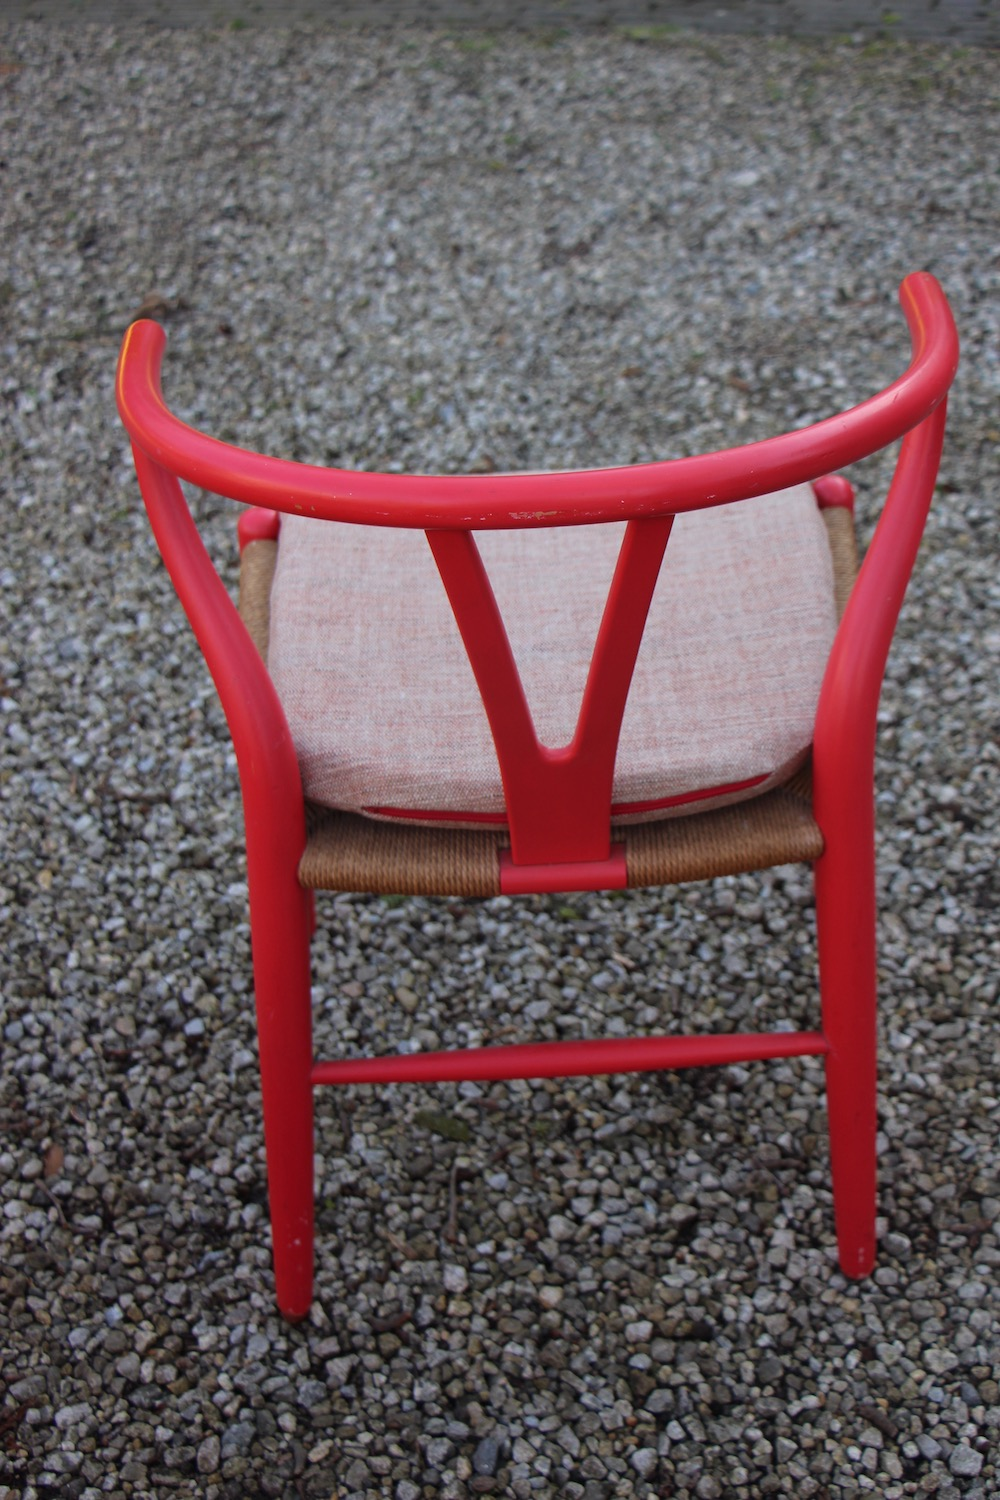 vintage Hans Wegner wishbone chairs, Y chairs, by Carl Hansen